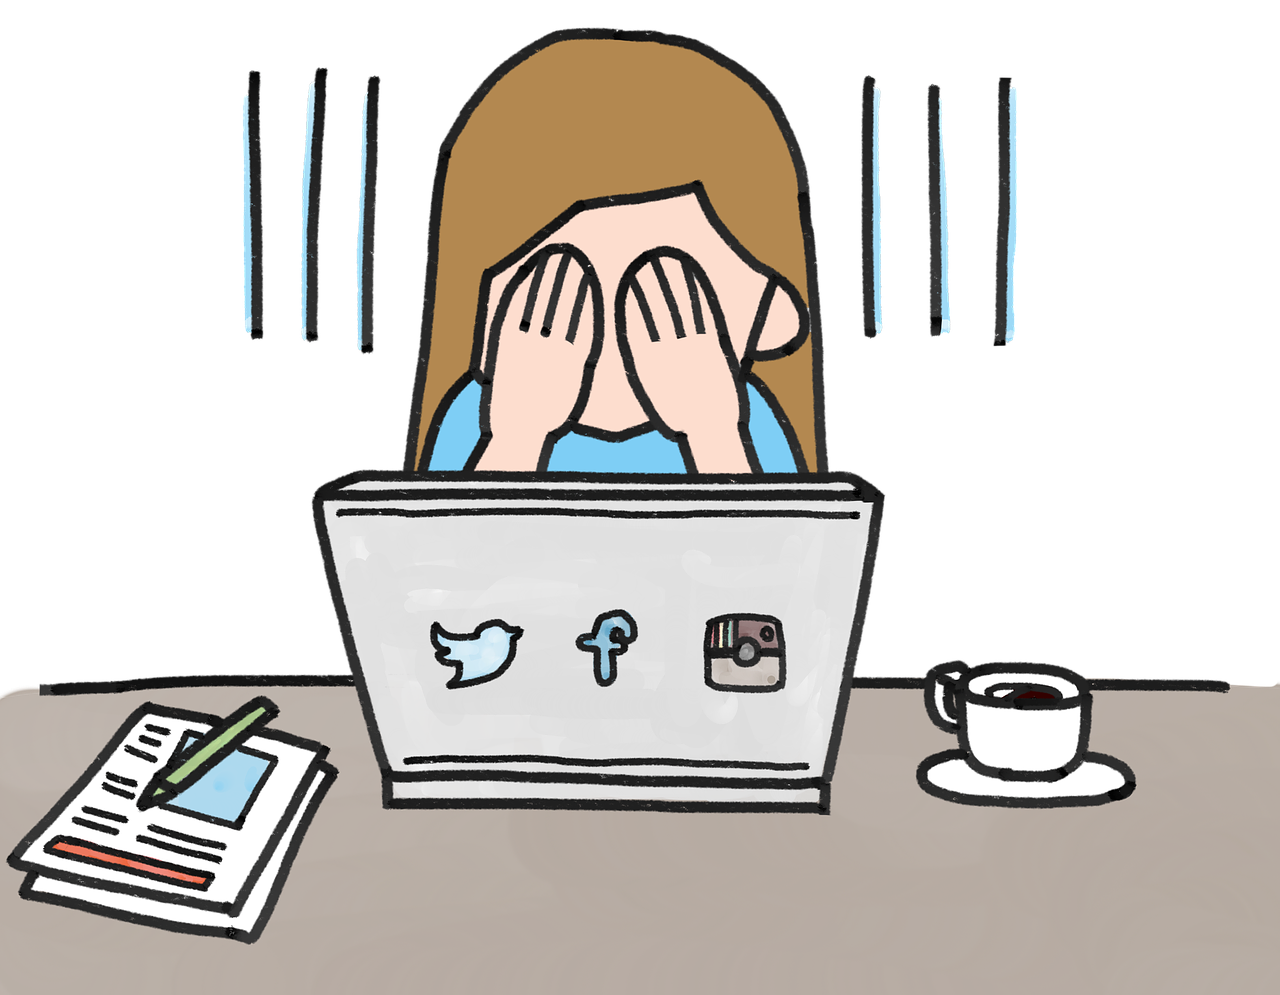 cartoon of a woman covering her eyes in sadness or frustration while sitting at a laptop